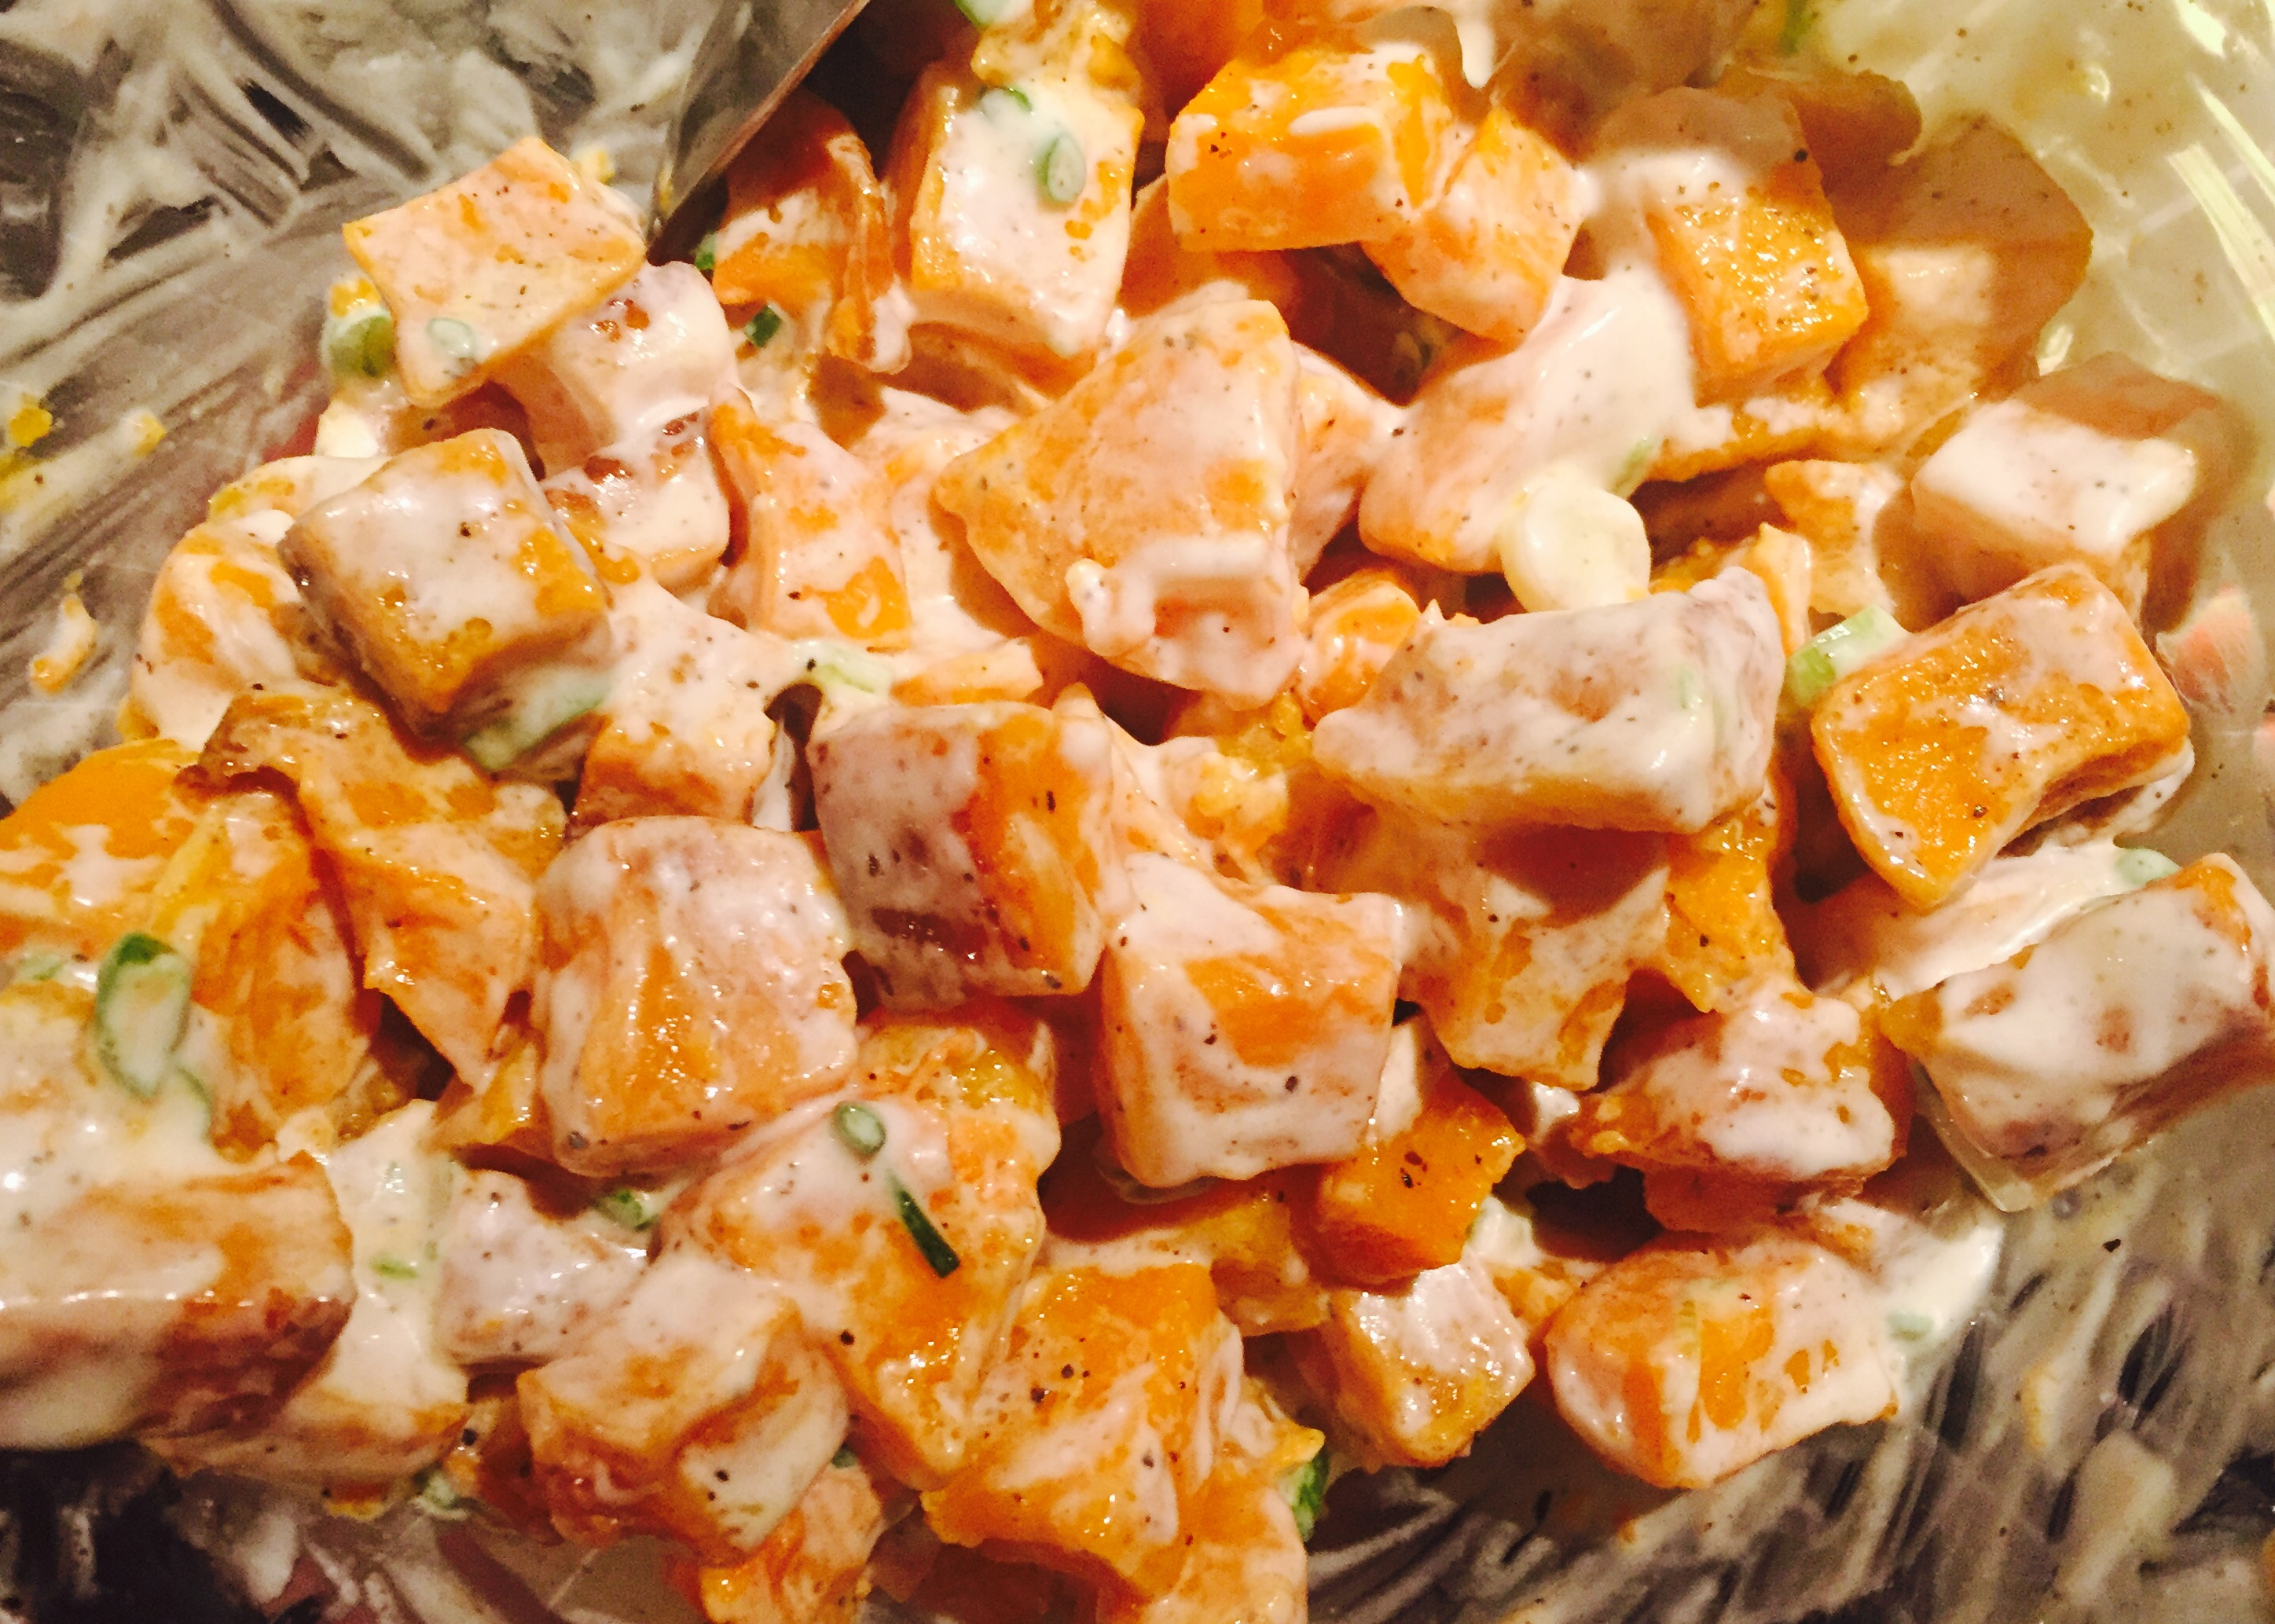 One of my favourite creations ... roasted butternut squash salad with a mayonnaise and dijon mustard dressing